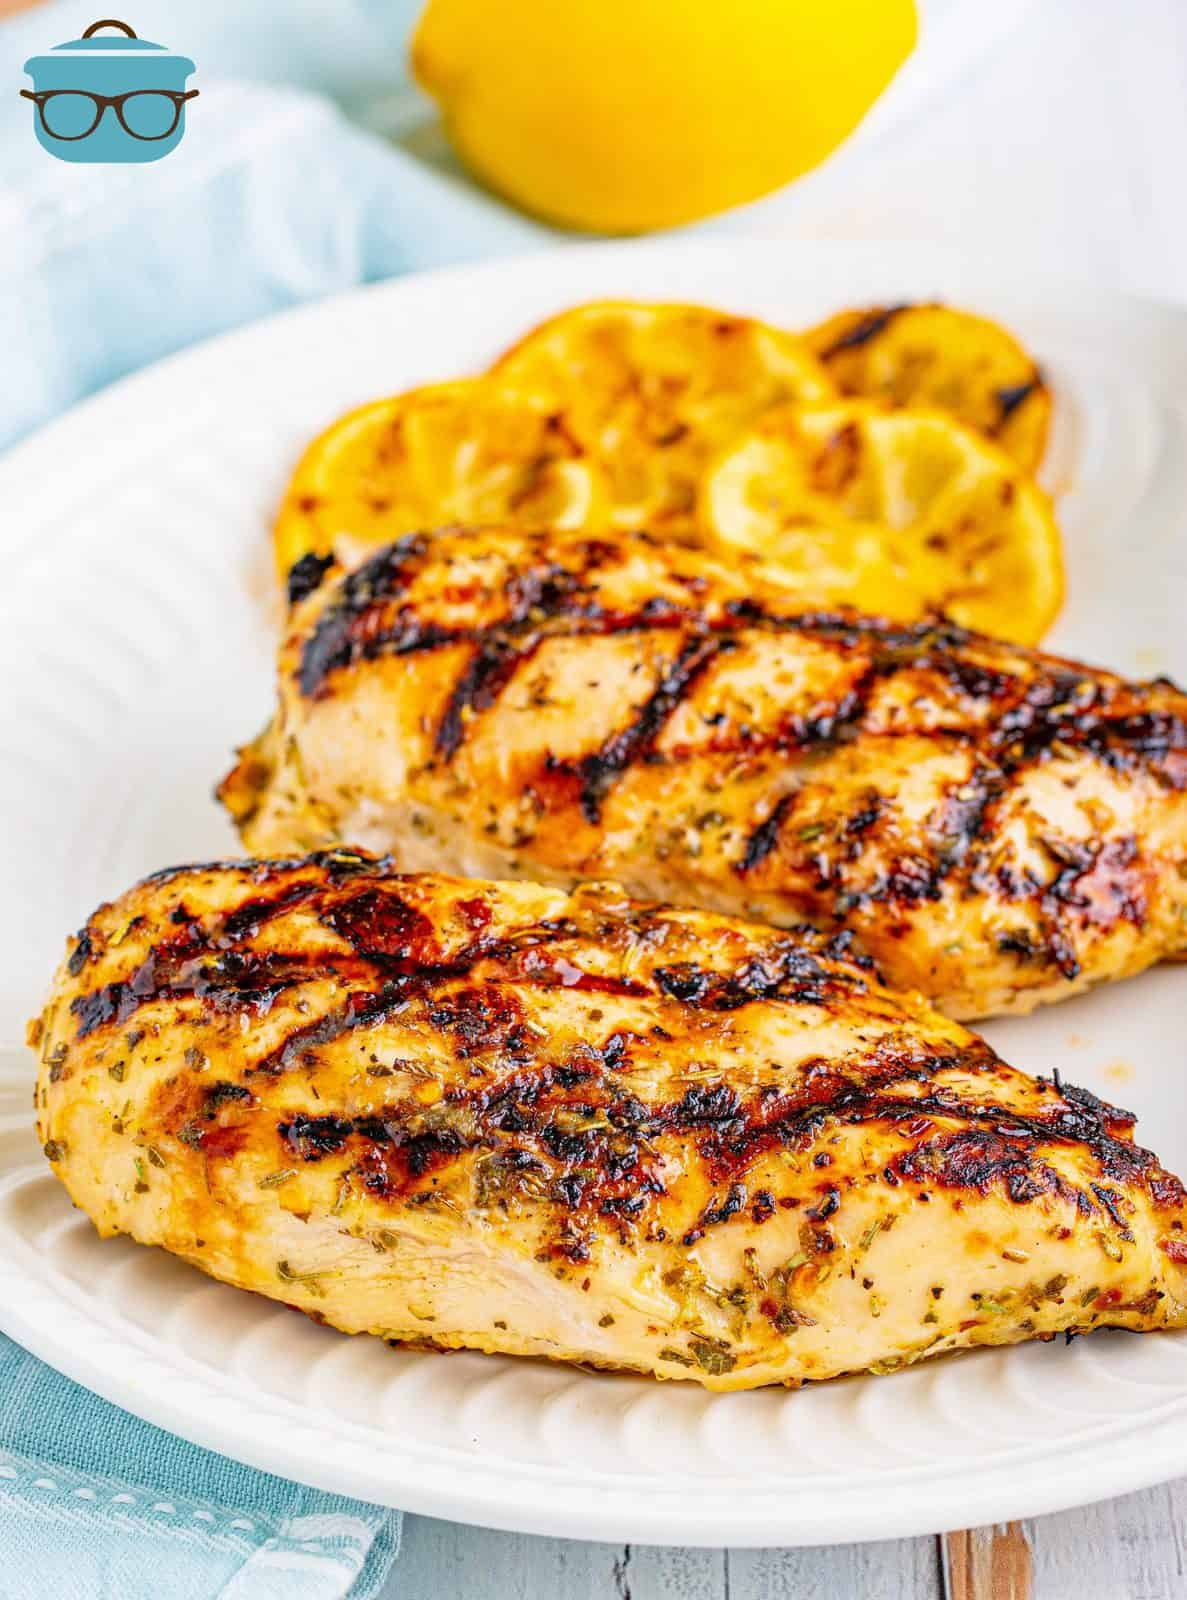 too pieces of grilled lemon garlic chicken show on a white plate.